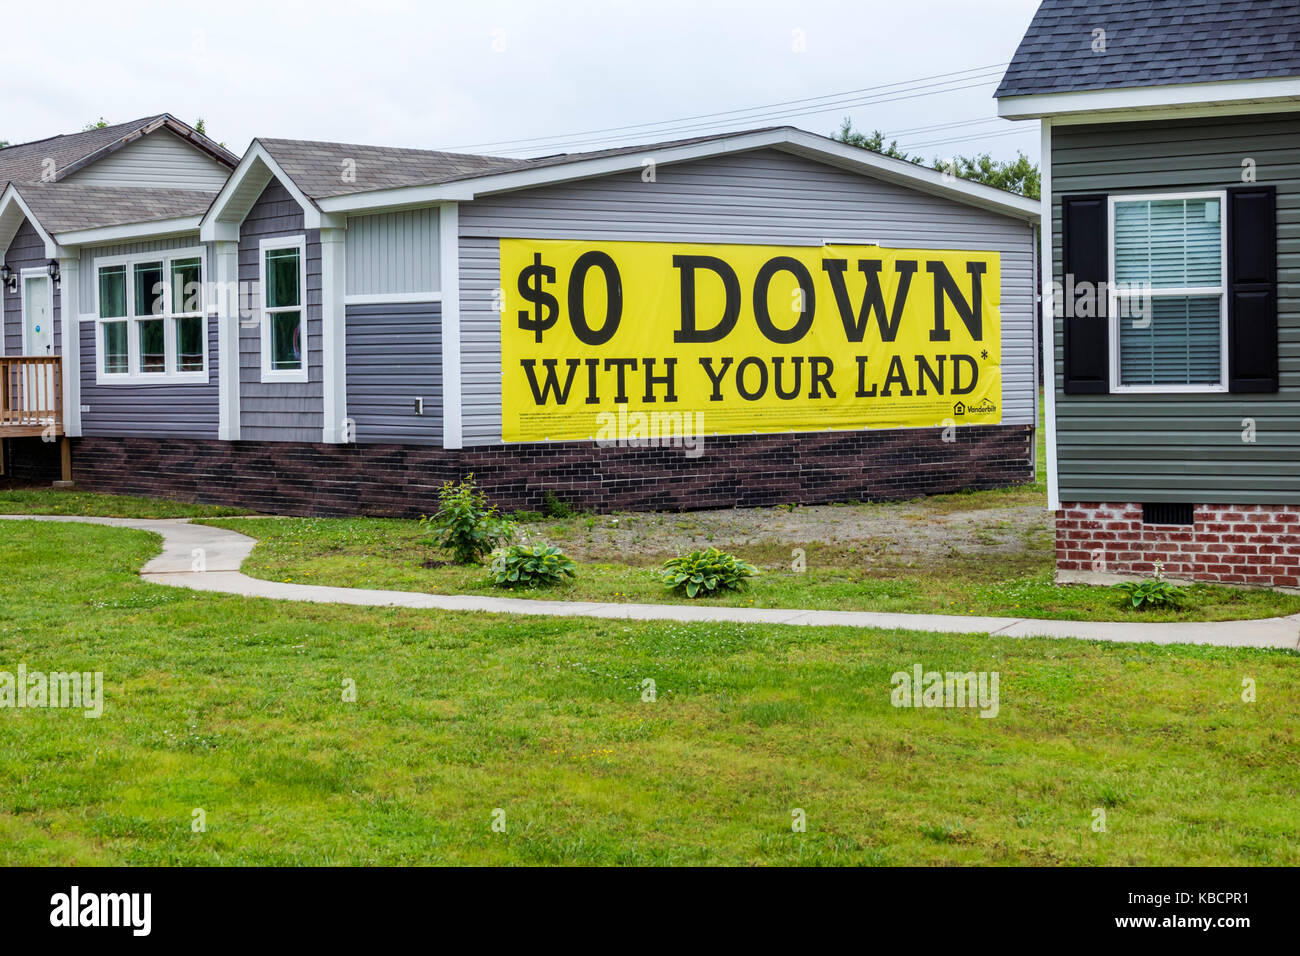 Homes For Sale Stock Photos & Homes For Sale Stock Images - Alamy